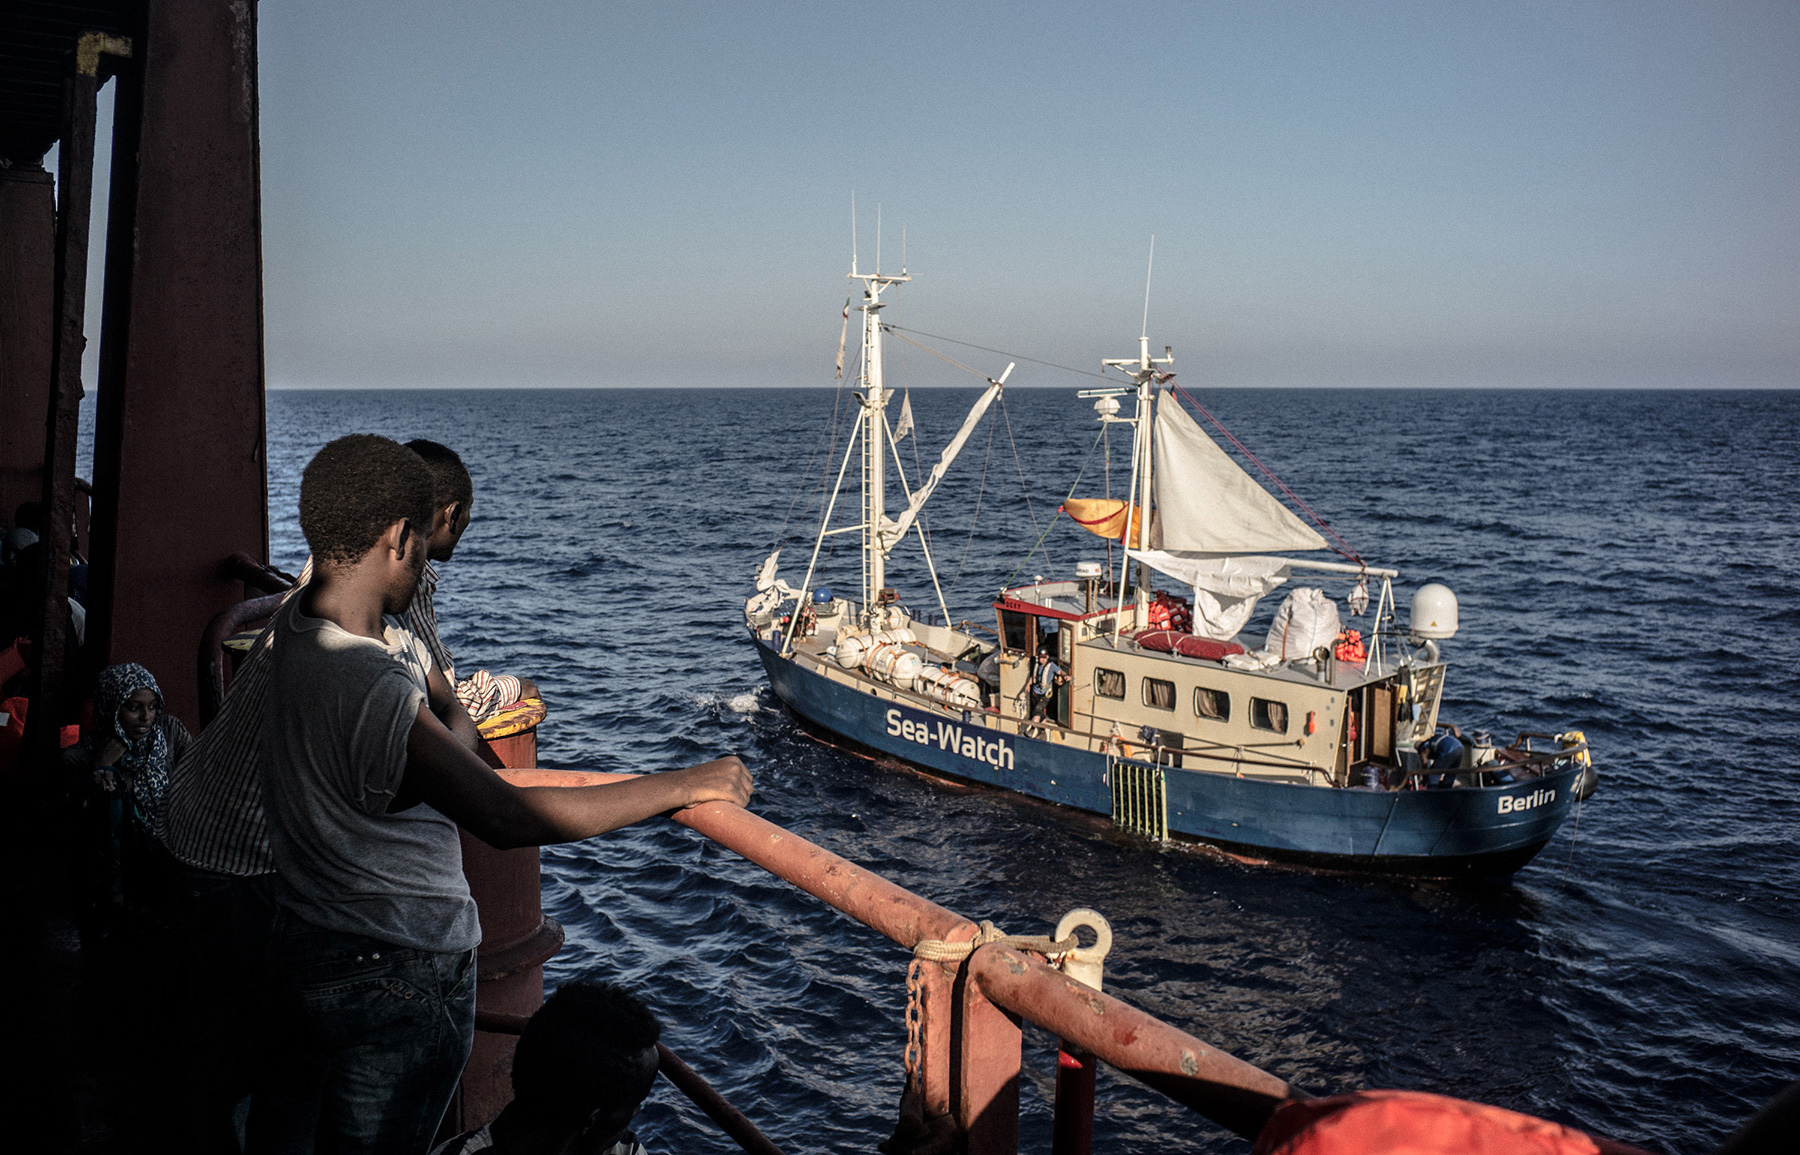 Hands Across the Water: Sea-Watch tries to save the migrants Europe ...